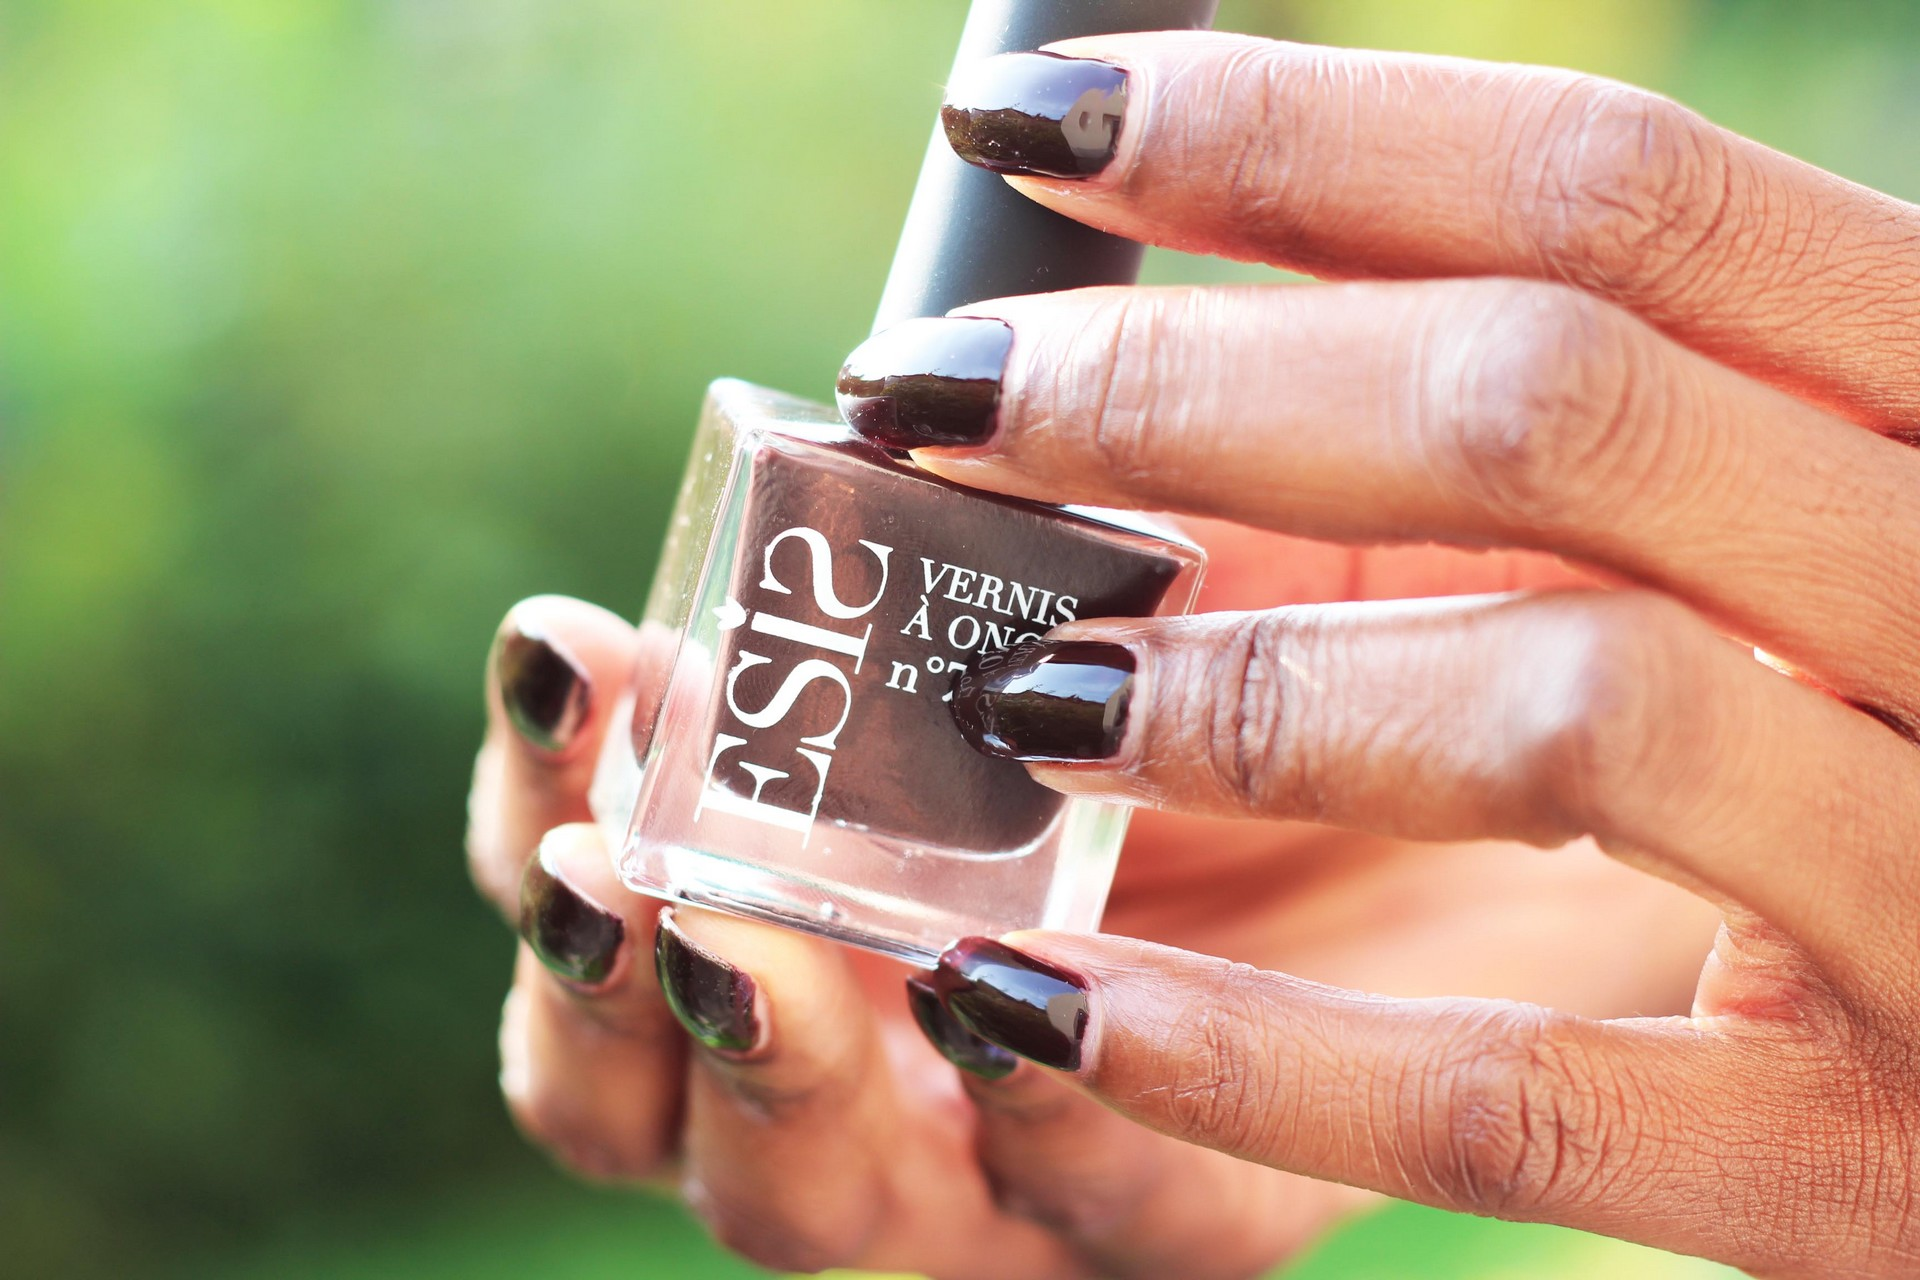 nunaavane-fall-nails-darkbrown-nailvarnish-autumn-inspired-ctbb3